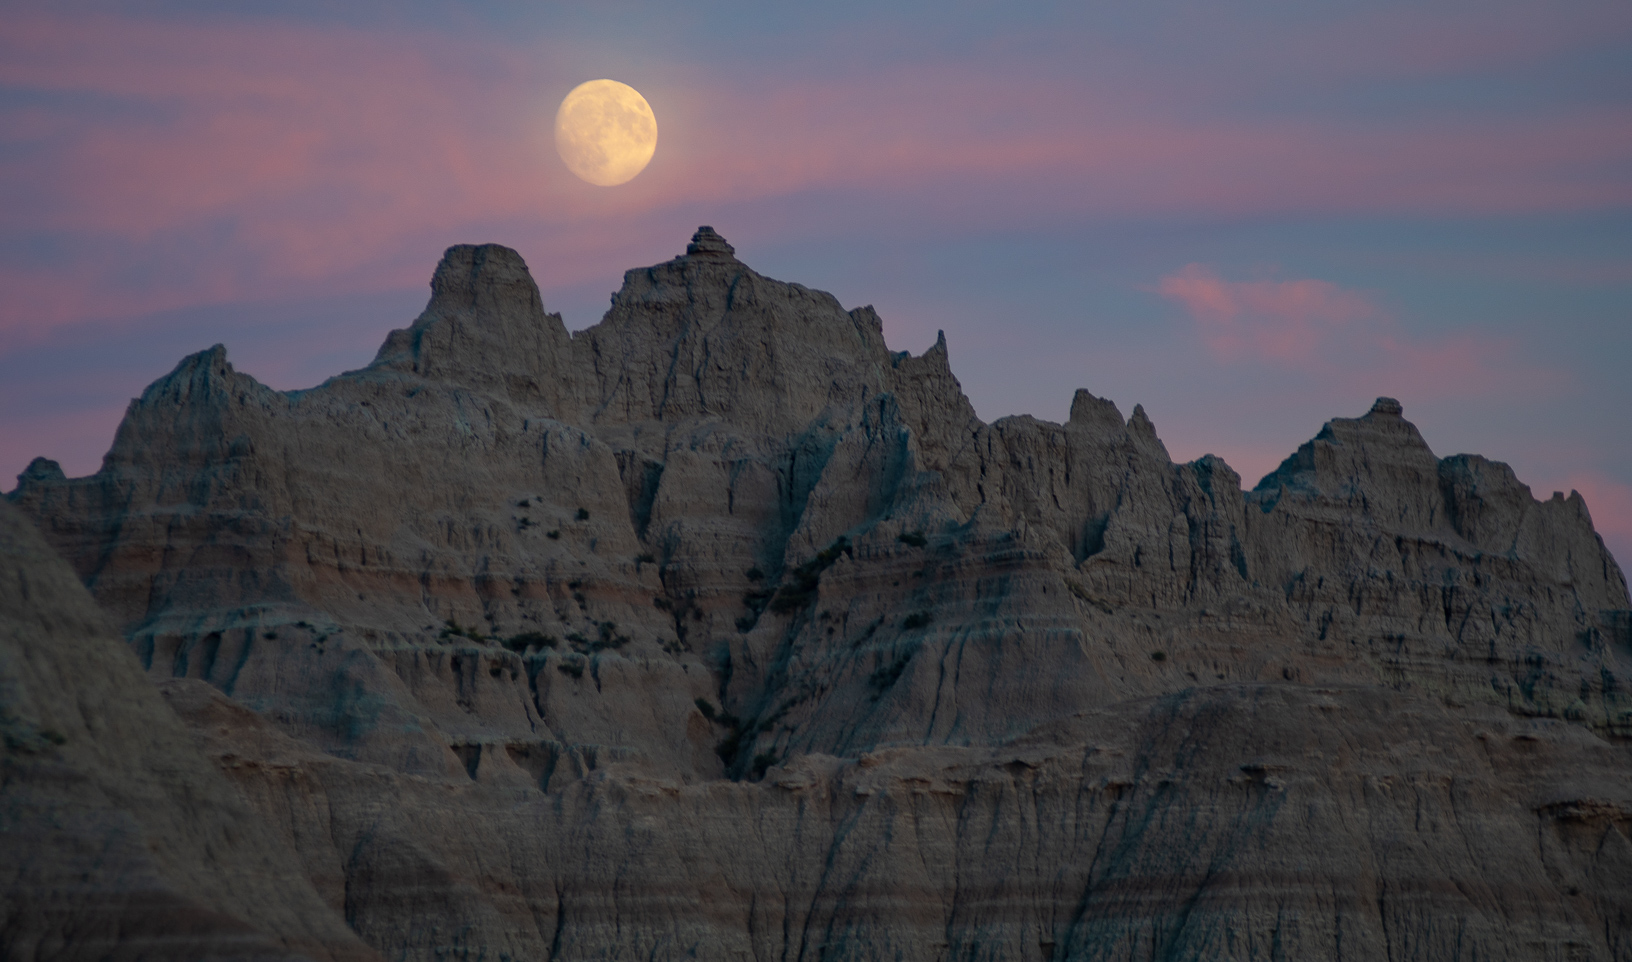 The moon shines bright over rock formations at Badlands National Park in South Dakota.